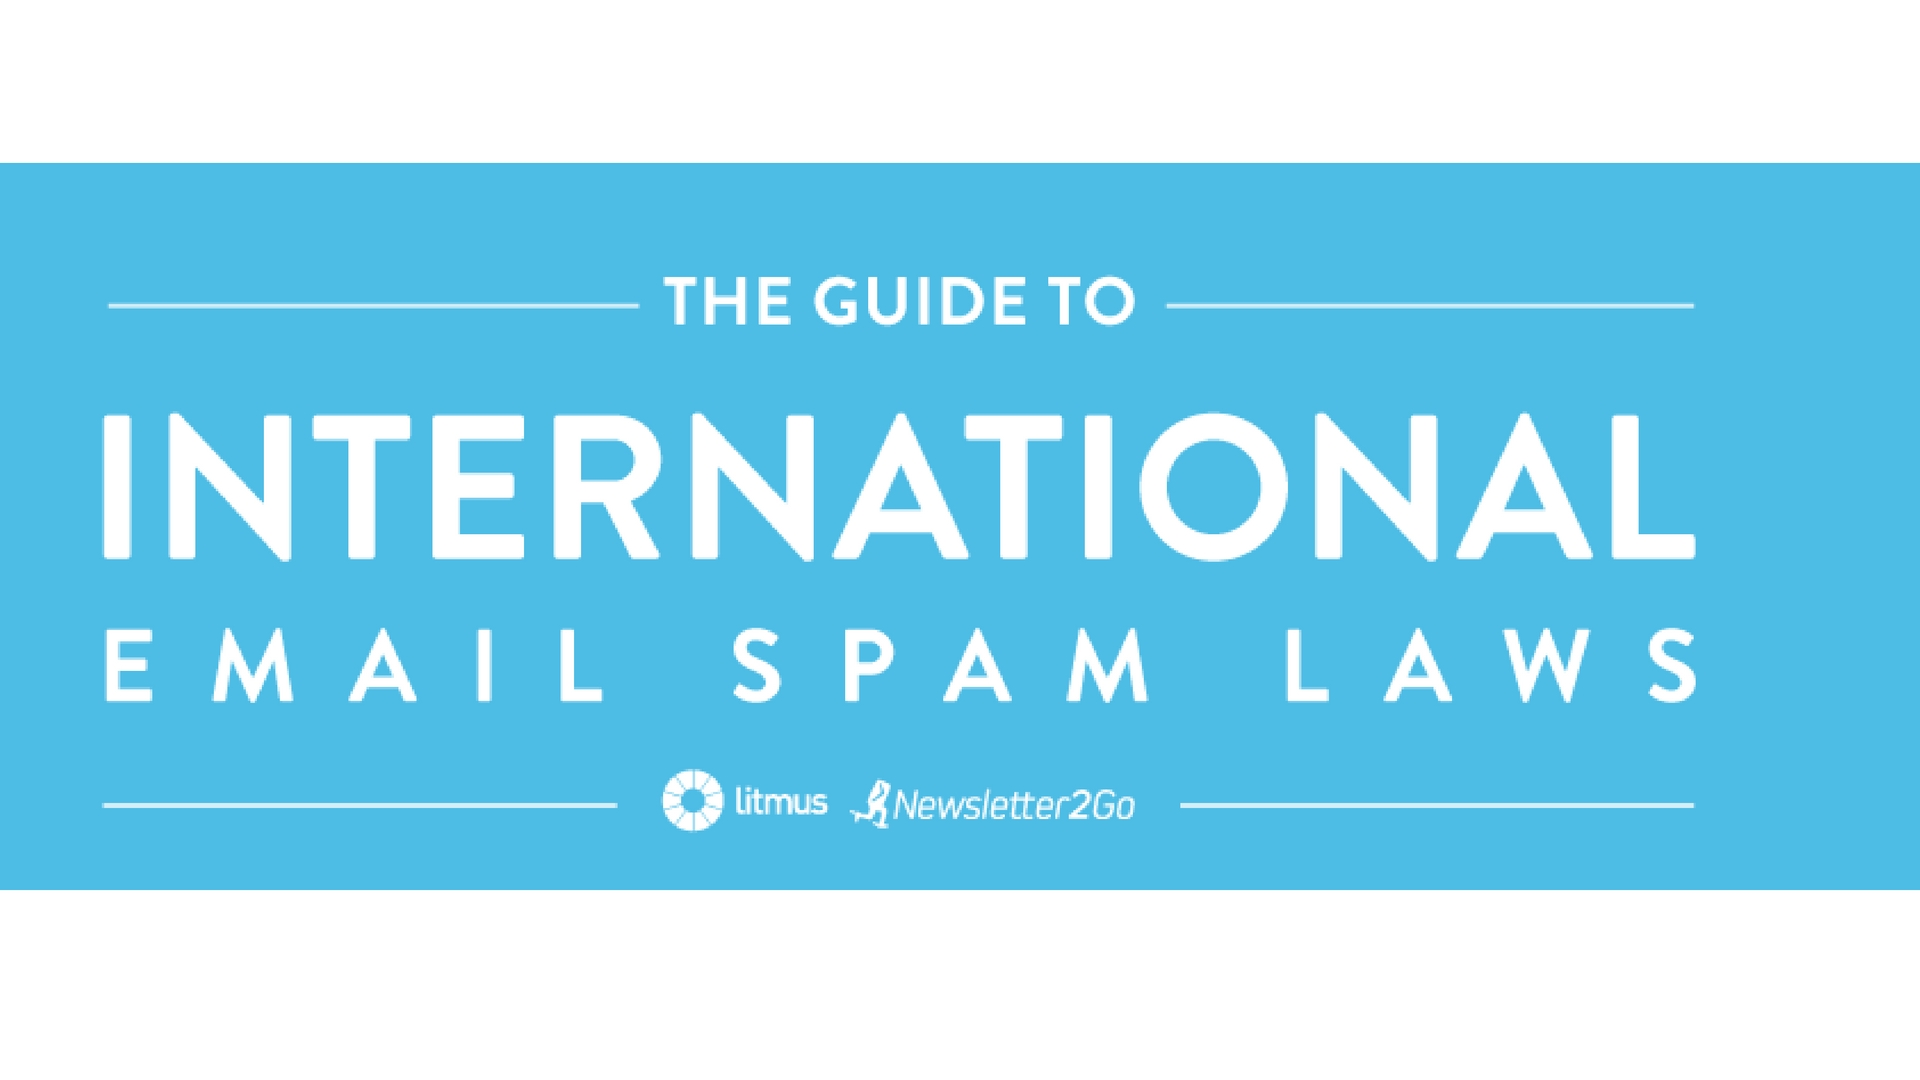 International Spam Laws